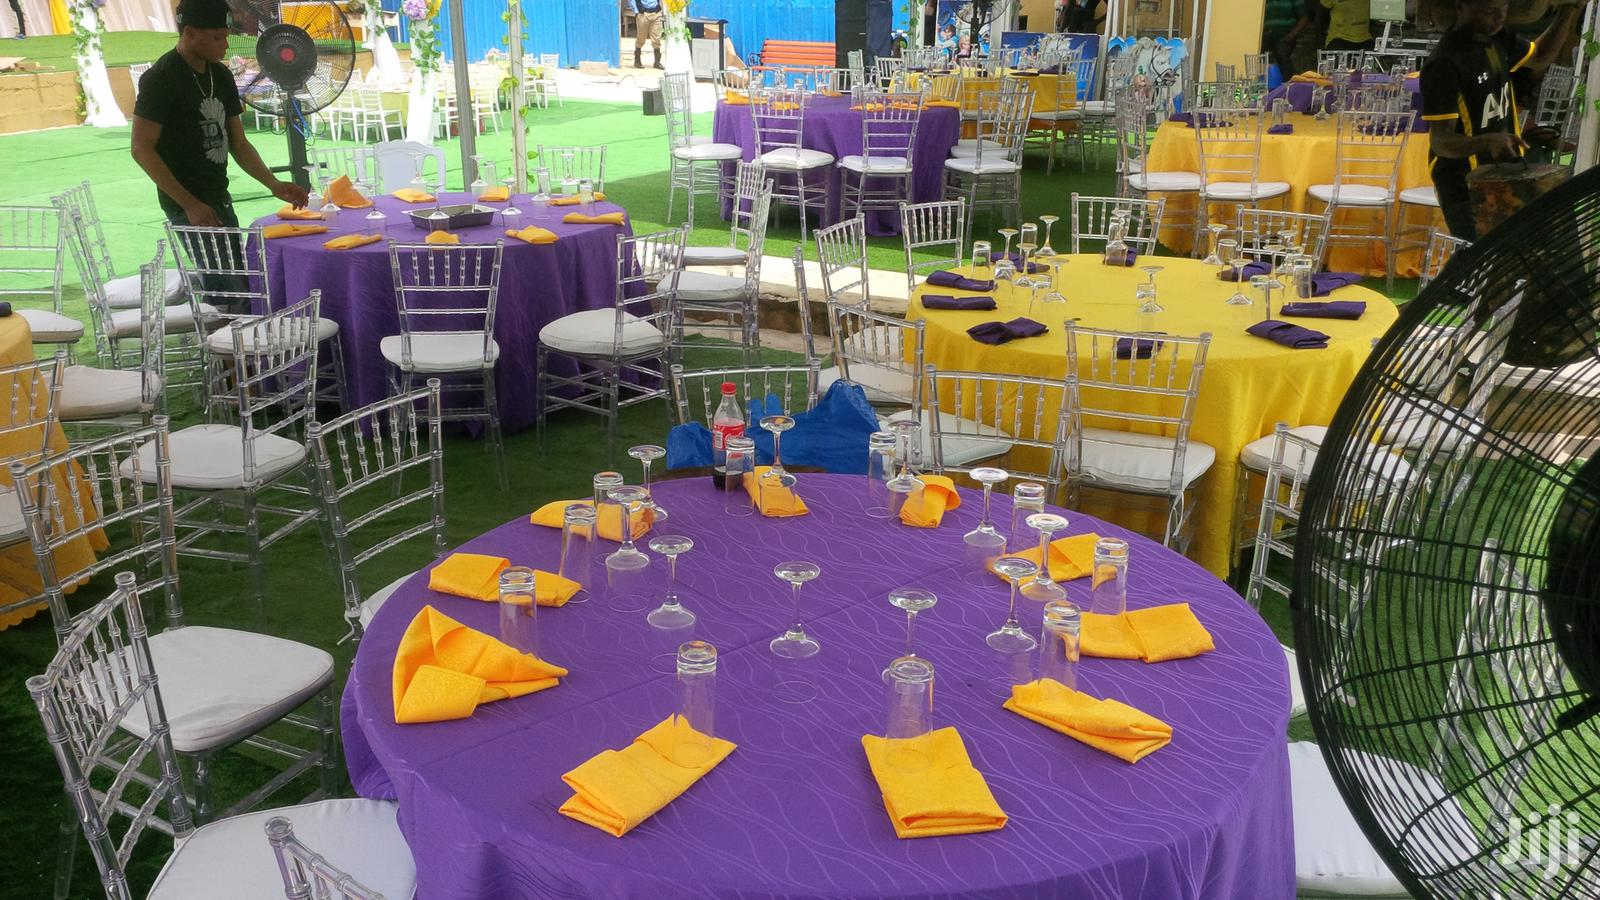 Event And Venue Decoration   Wedding Venues & Services for sale in Ikeja, Lagos State, Nigeria